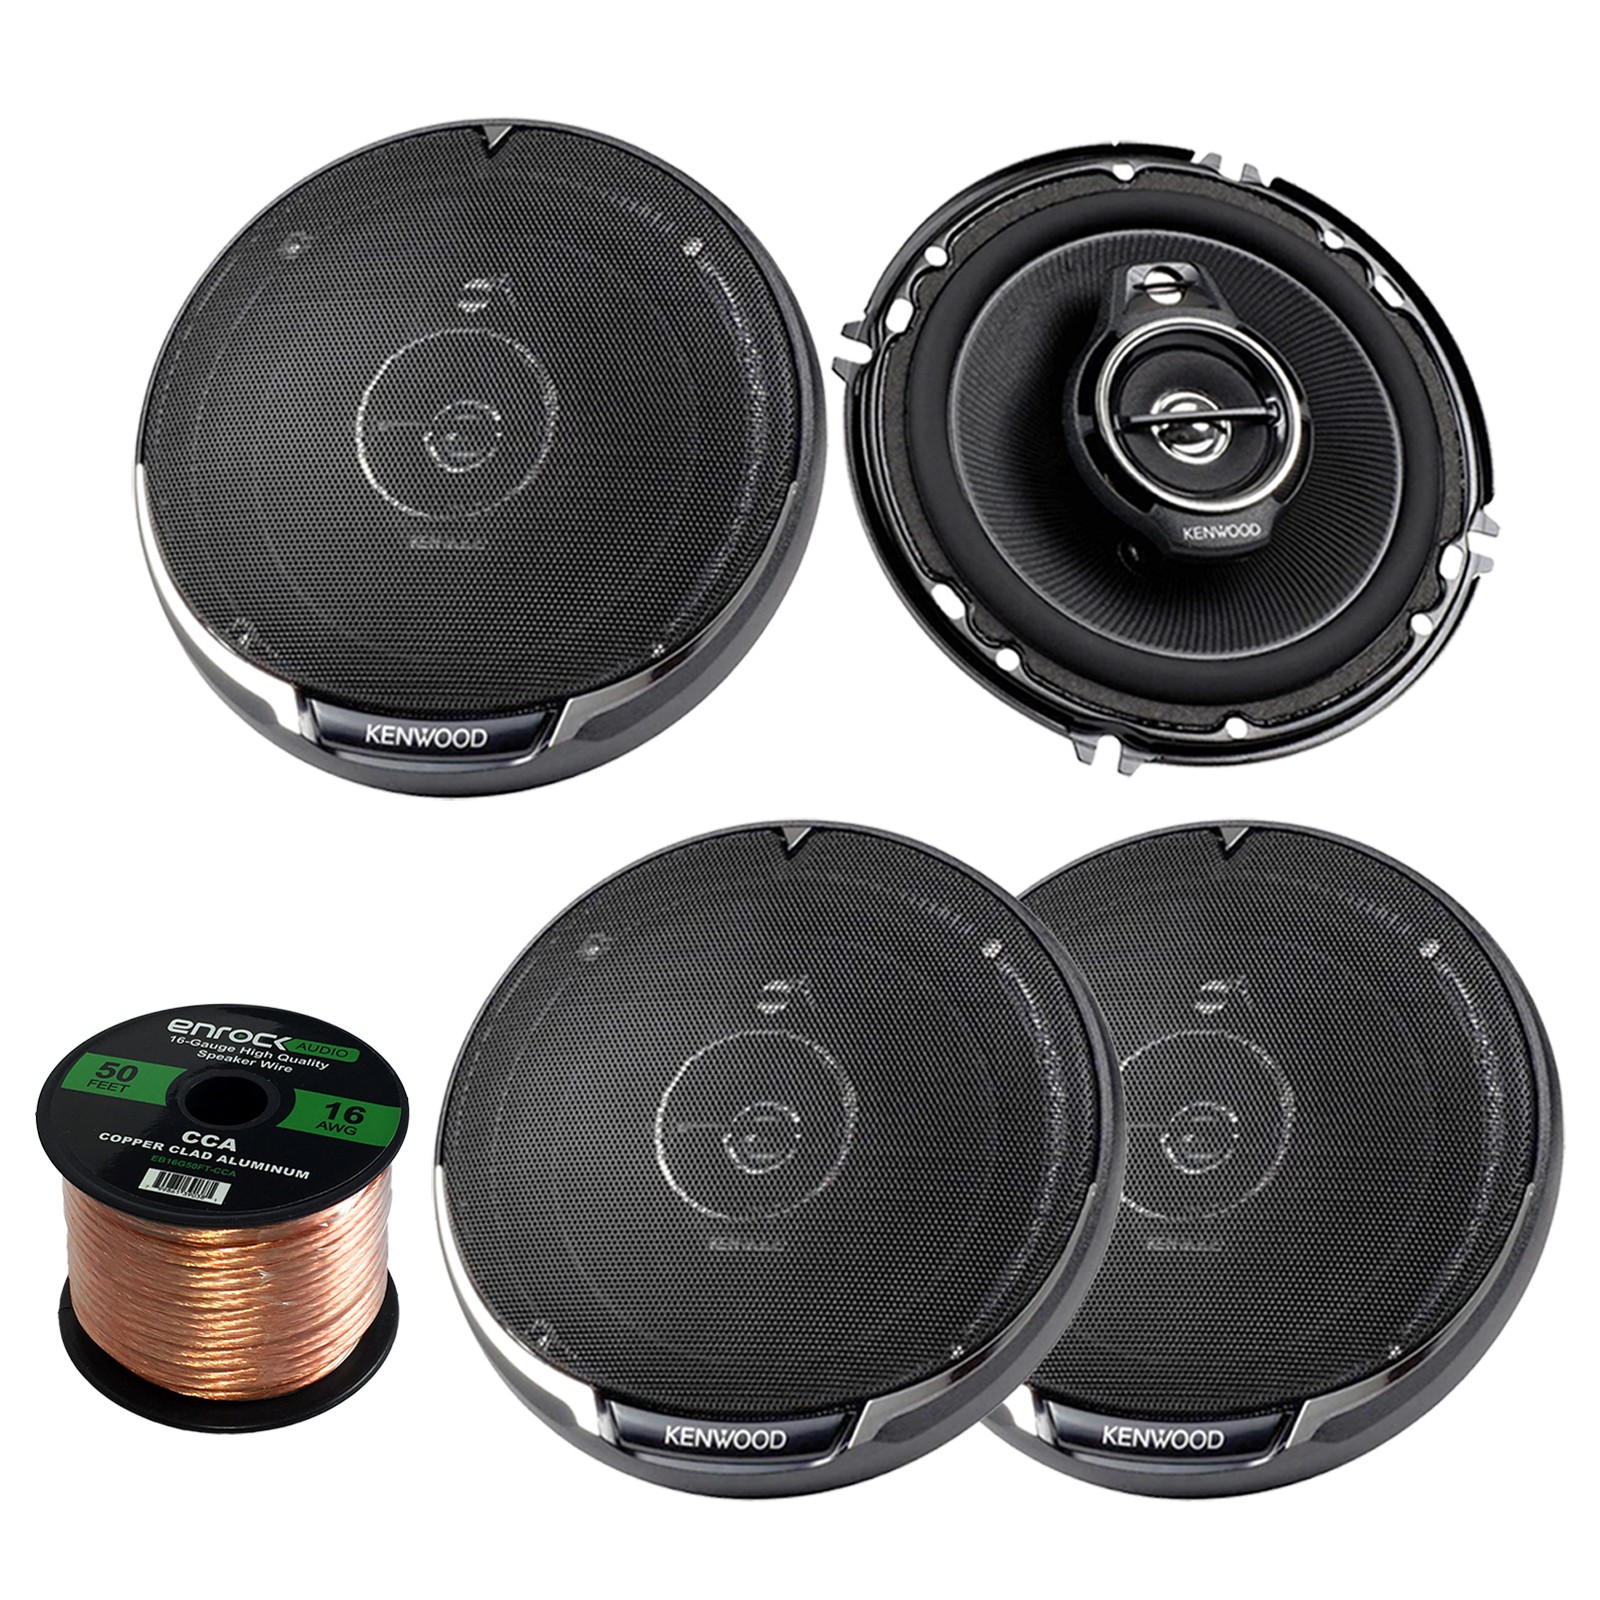 "2 x Kenwood KFC1695PS Performance Series 6-1/2"" 3-way 320W Car Speakers, and Enrock Audio 16-Gauge 50 Foot Speaker Wire"